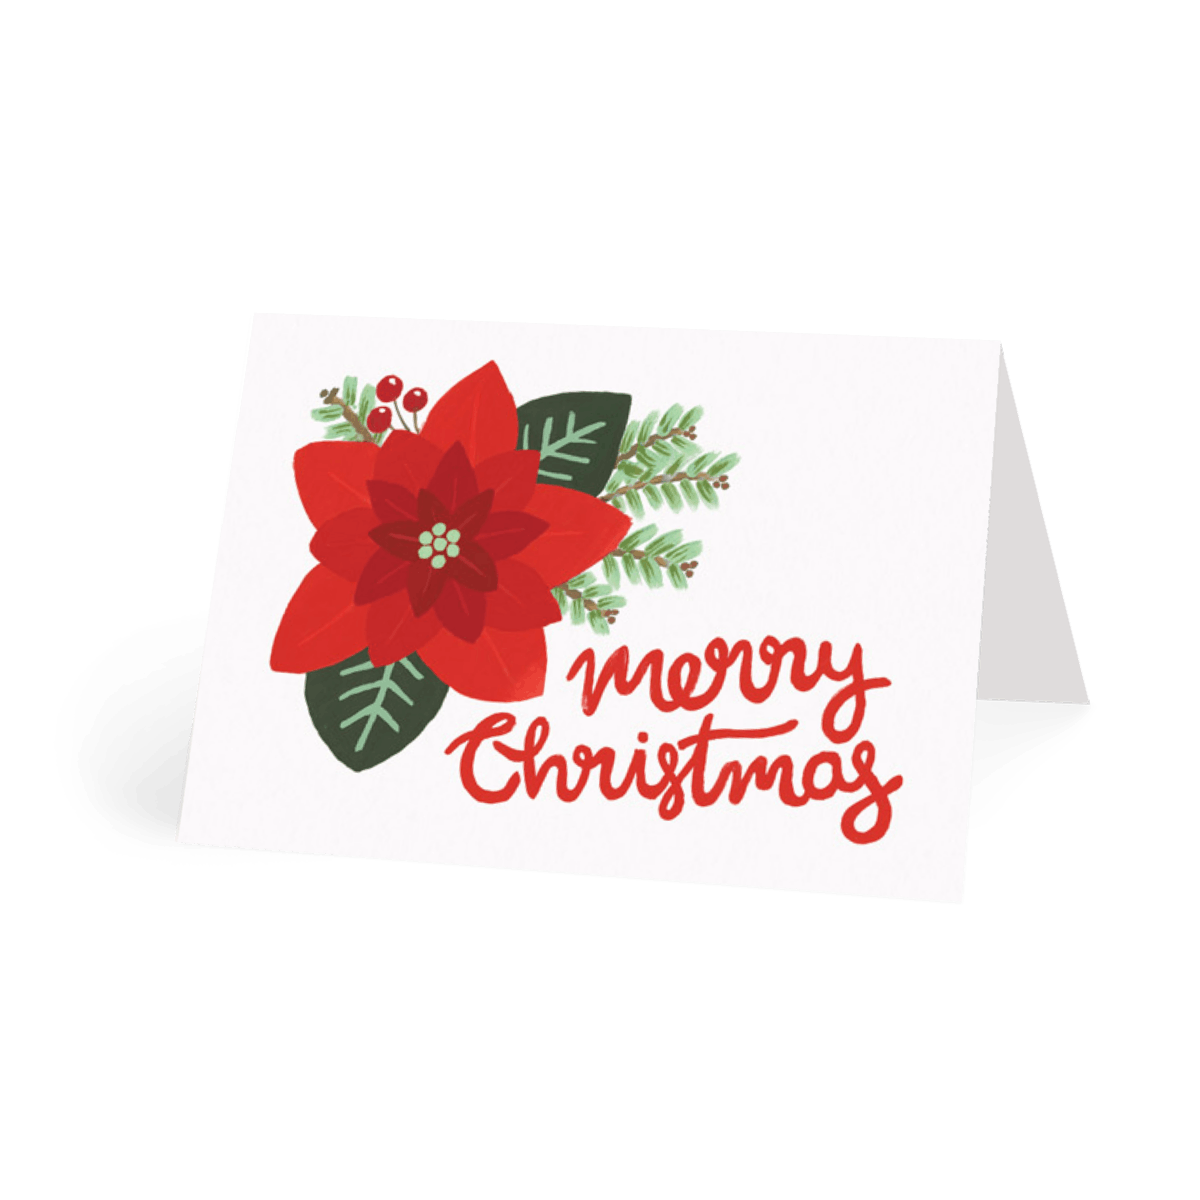 Https%3a%2f%2fwww.papier.com%2fproduct image%2f10008%2f14%2fpoinsettia 2545 front 1570649215.png?ixlib=rb 1.1